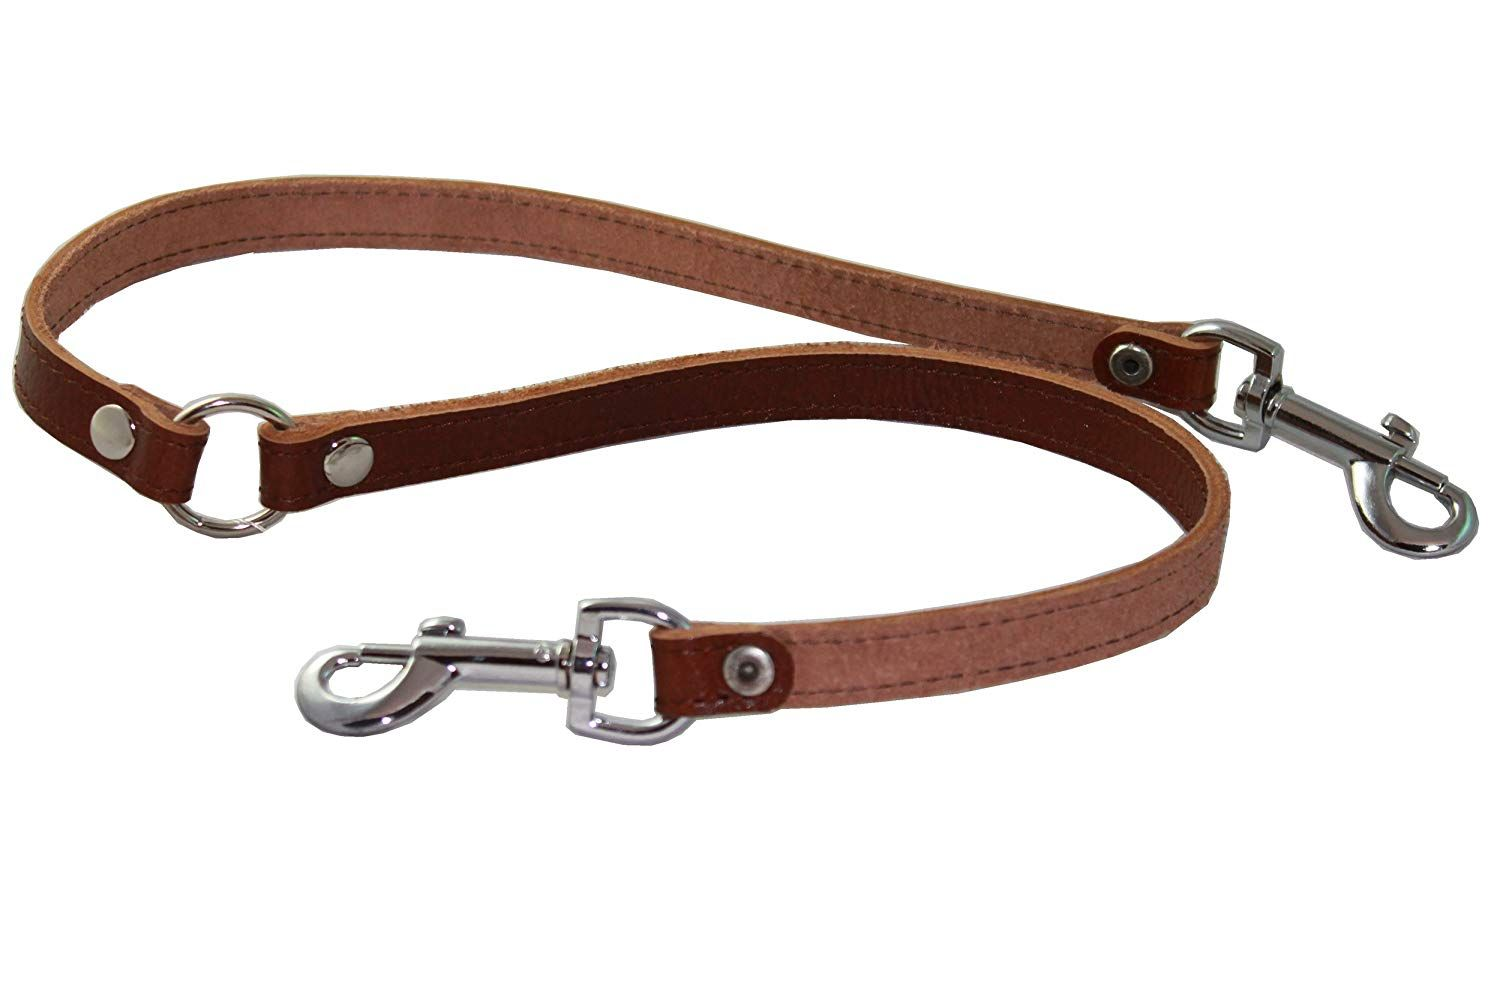 Genuine Leather Double Dog Leash Two Dog Coupler Brown Small 15 Long By 1 2 Wide Hope That You Actually Do Enj Dog Leash Genuine Leather Dog Collar